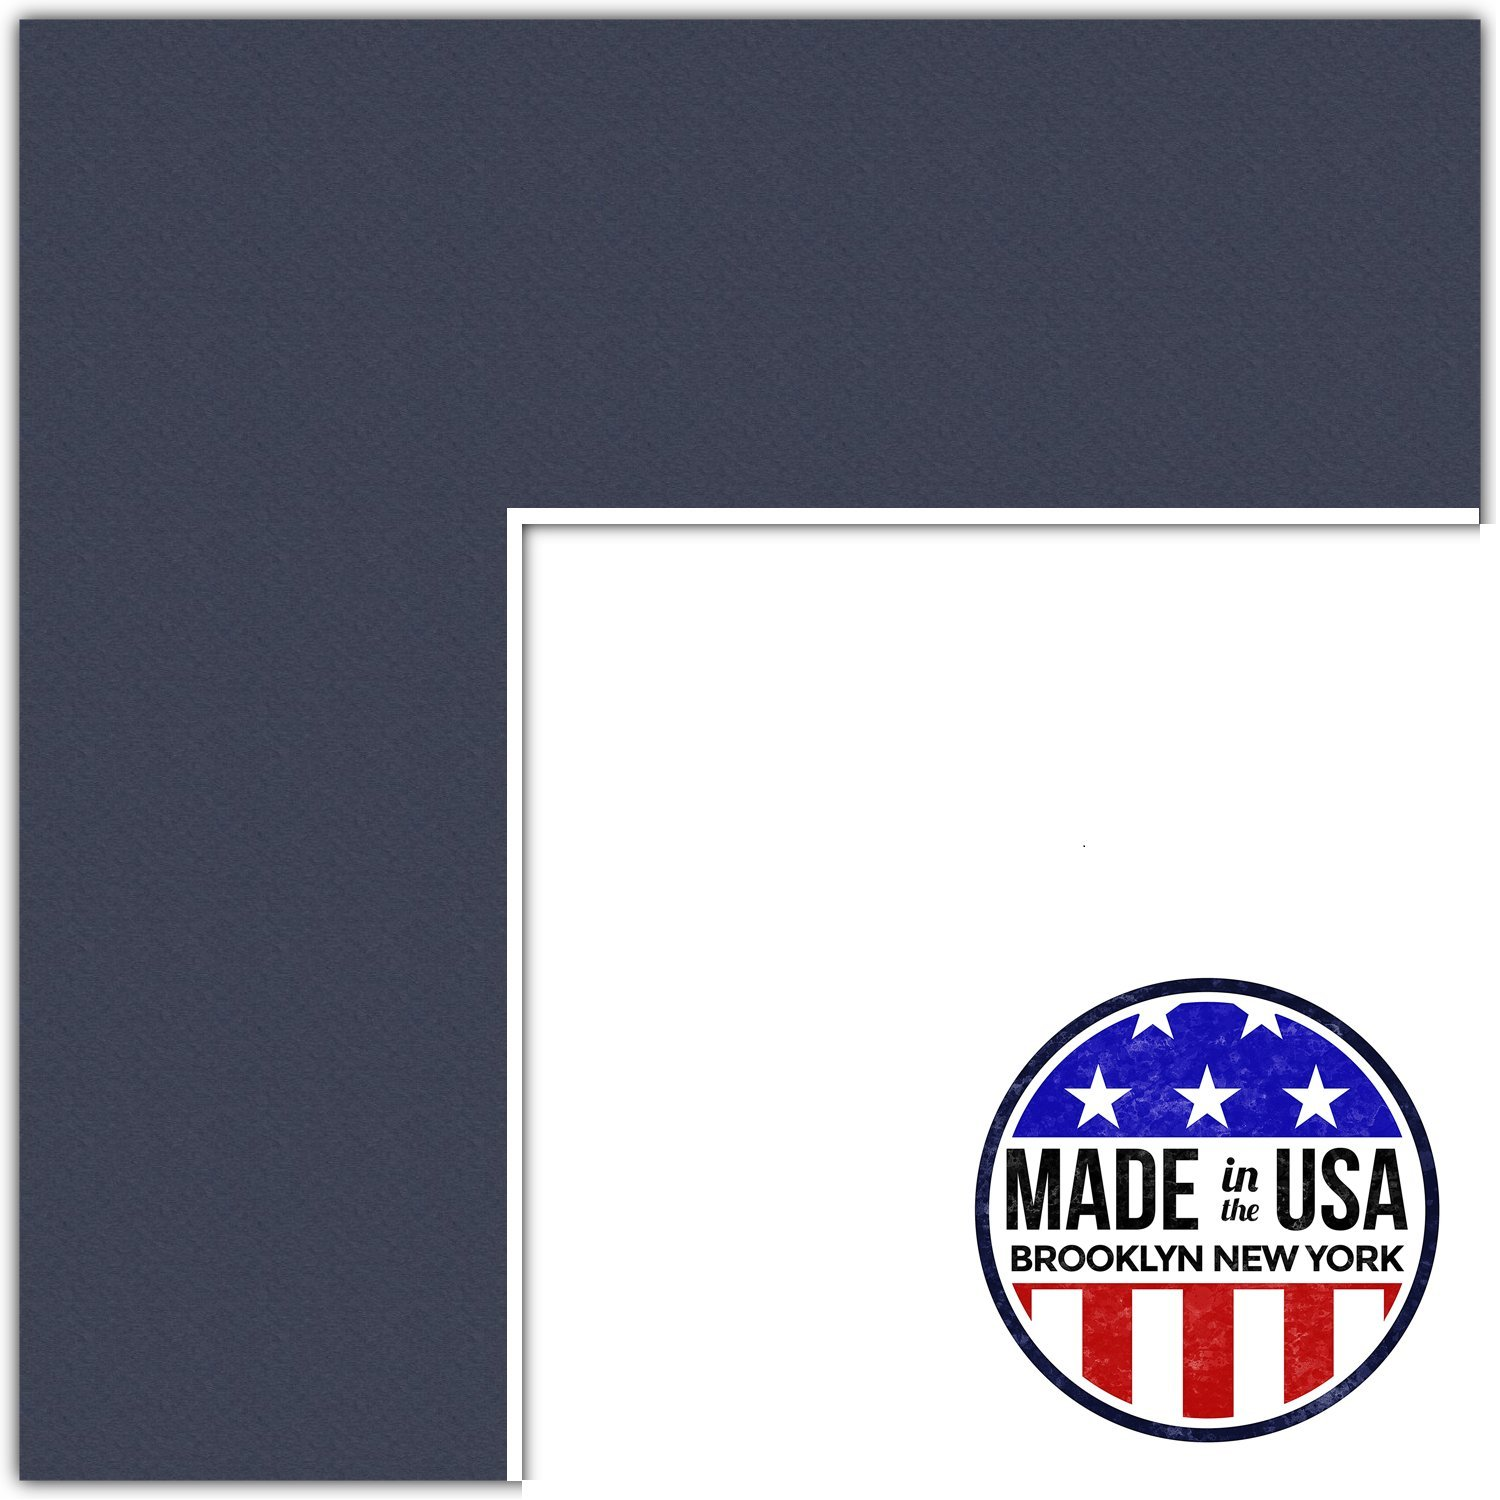 18x24 Midnight Blue / Blue Jay Custom Mat for Picture Frame with 14x20 opening size (Mat Only, Frame NOT Included) by ArtToFrames